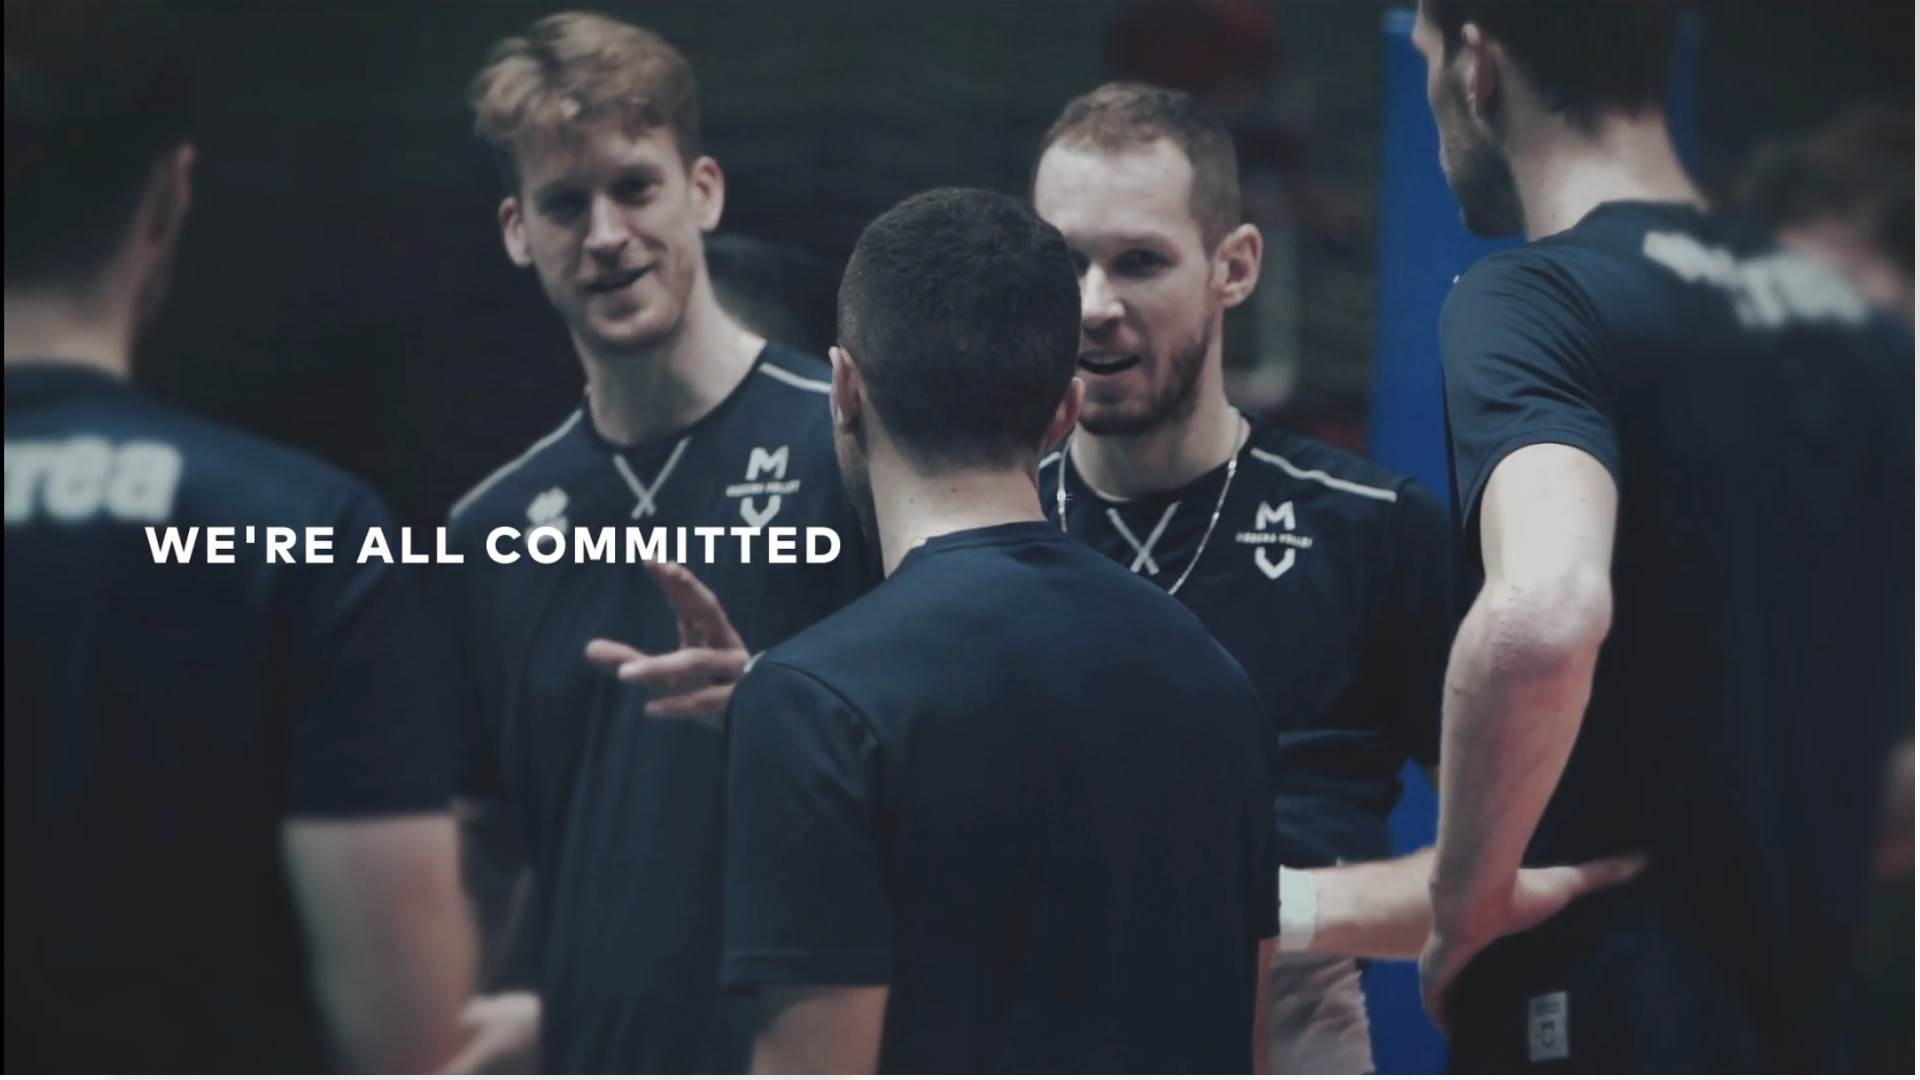 TEC Eurolab & Modena Volley<br>To win together